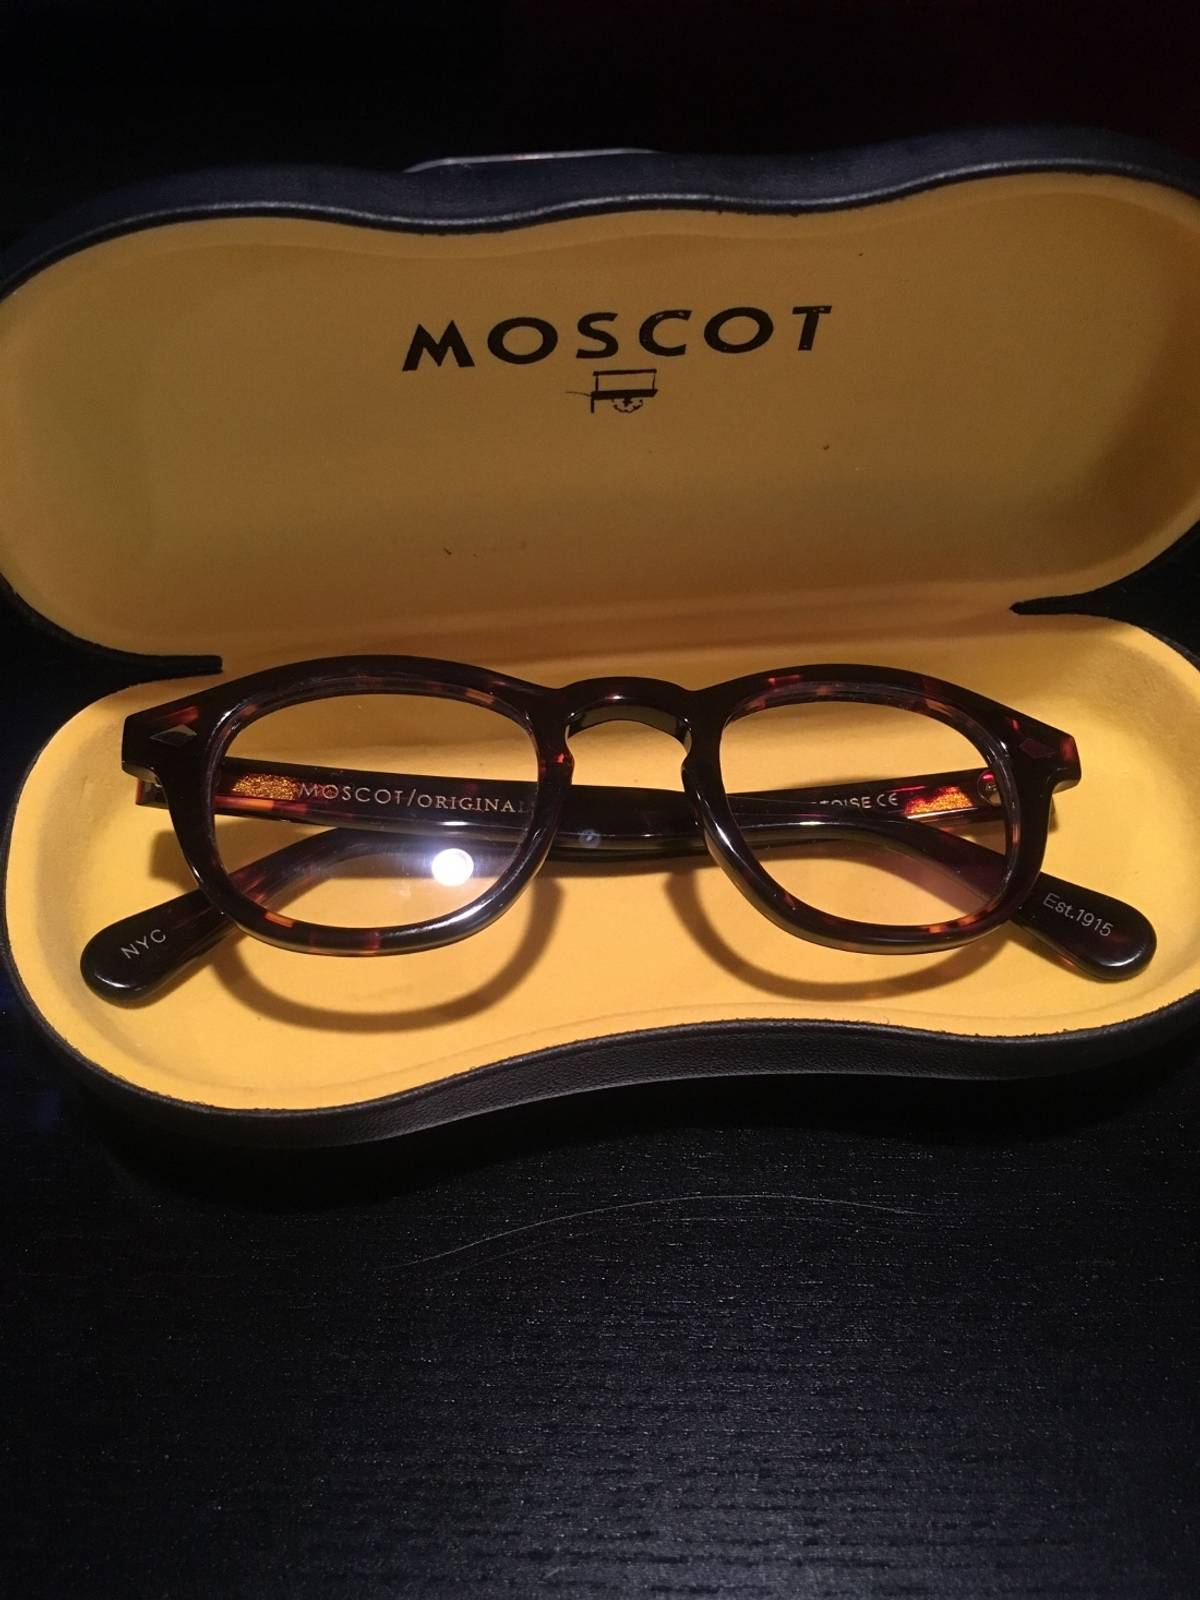 Best sellers for Moscot Eyeglasses